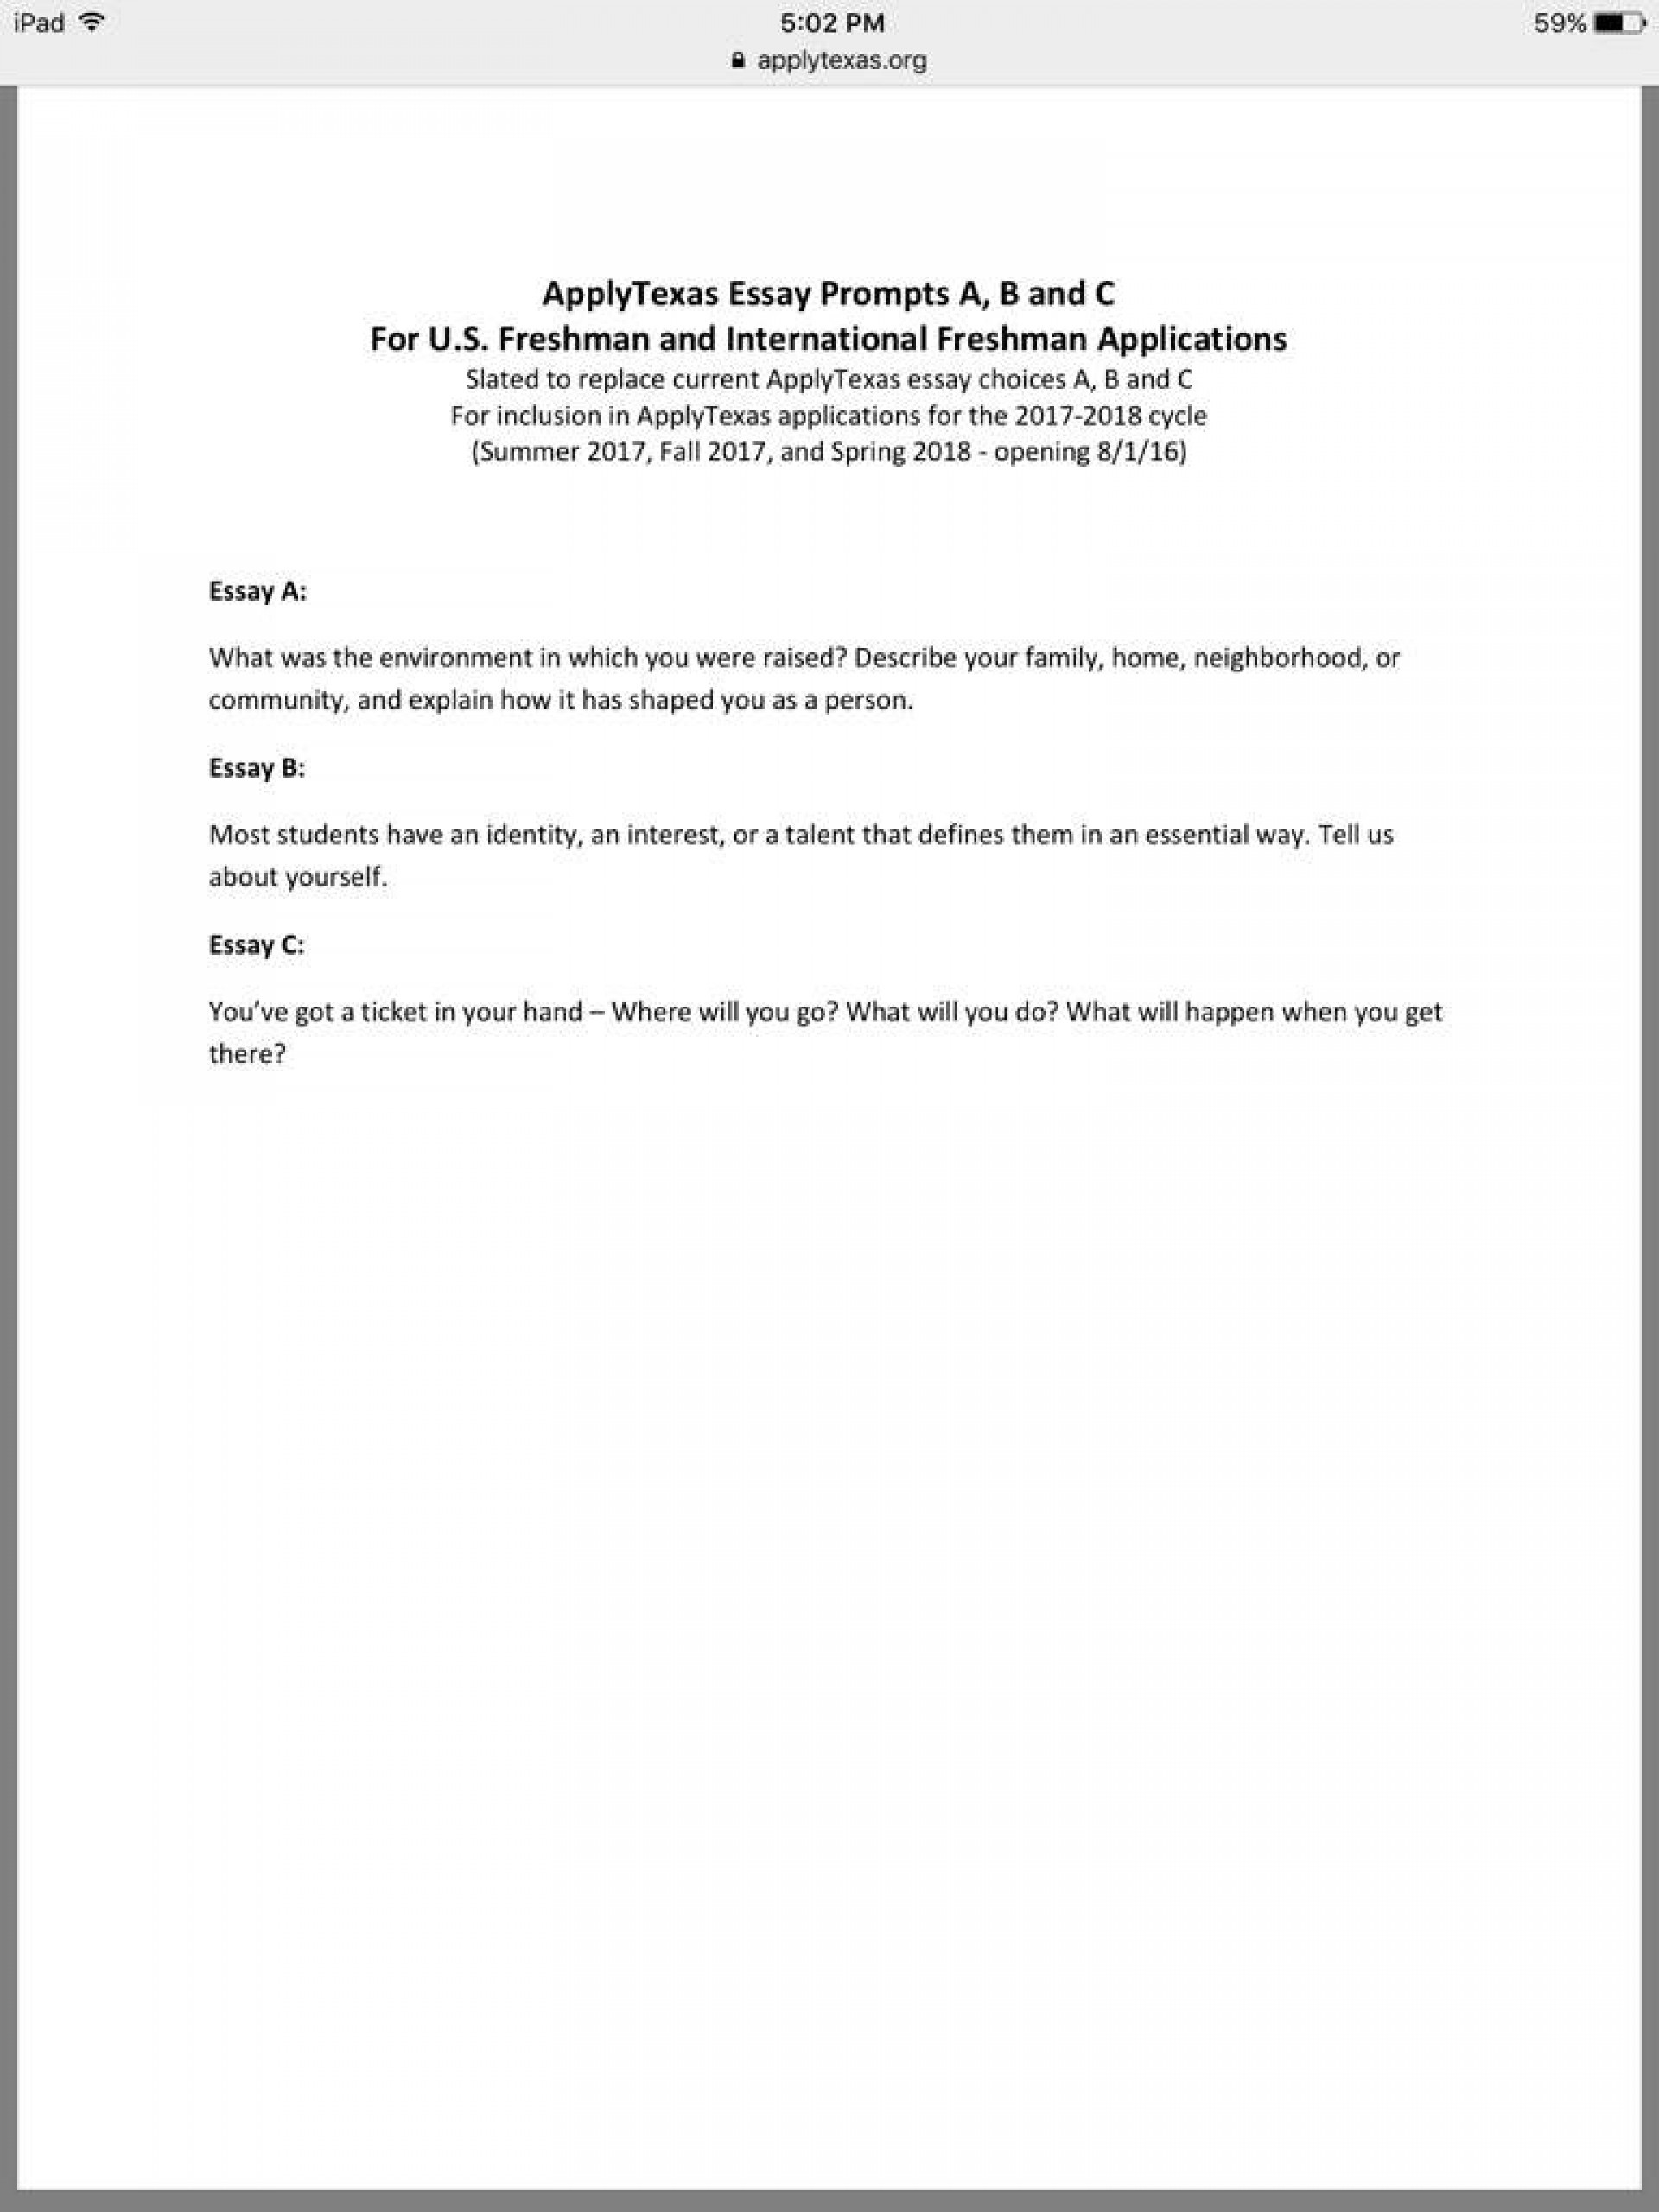 004 Apply Texas Essay Topics 427aa3812b5df54f56a41e0a54db6e765049eada Hq Archaicawful Prompt C Example Topic Examples A 1920